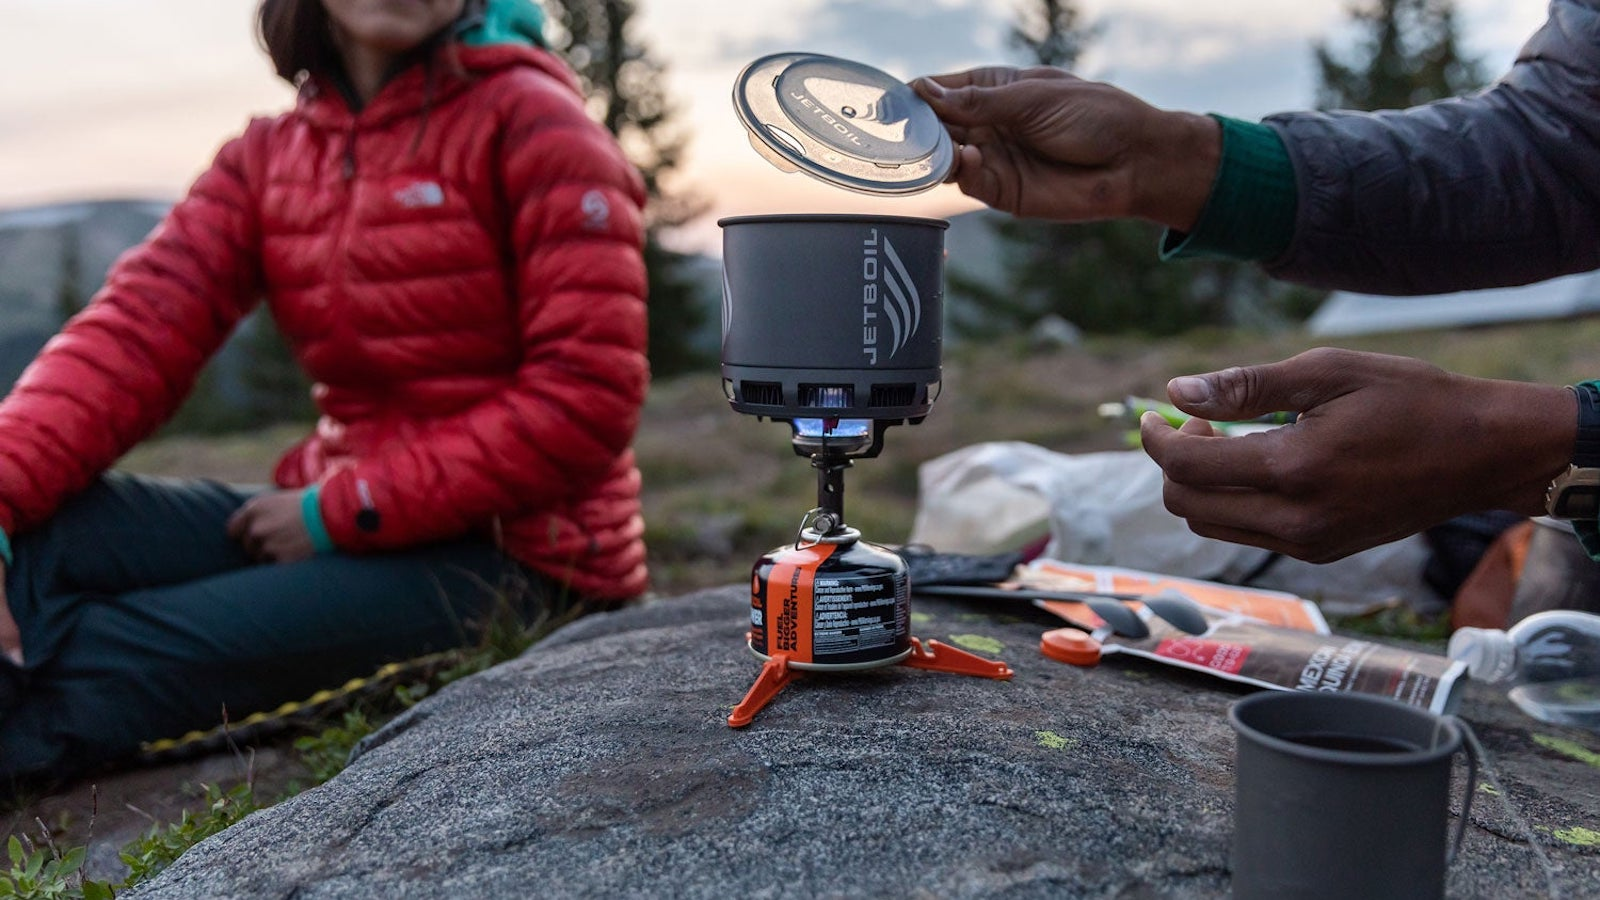 Jetboil Stash standalone stove lets you prepare and cook meals in the great outdoors